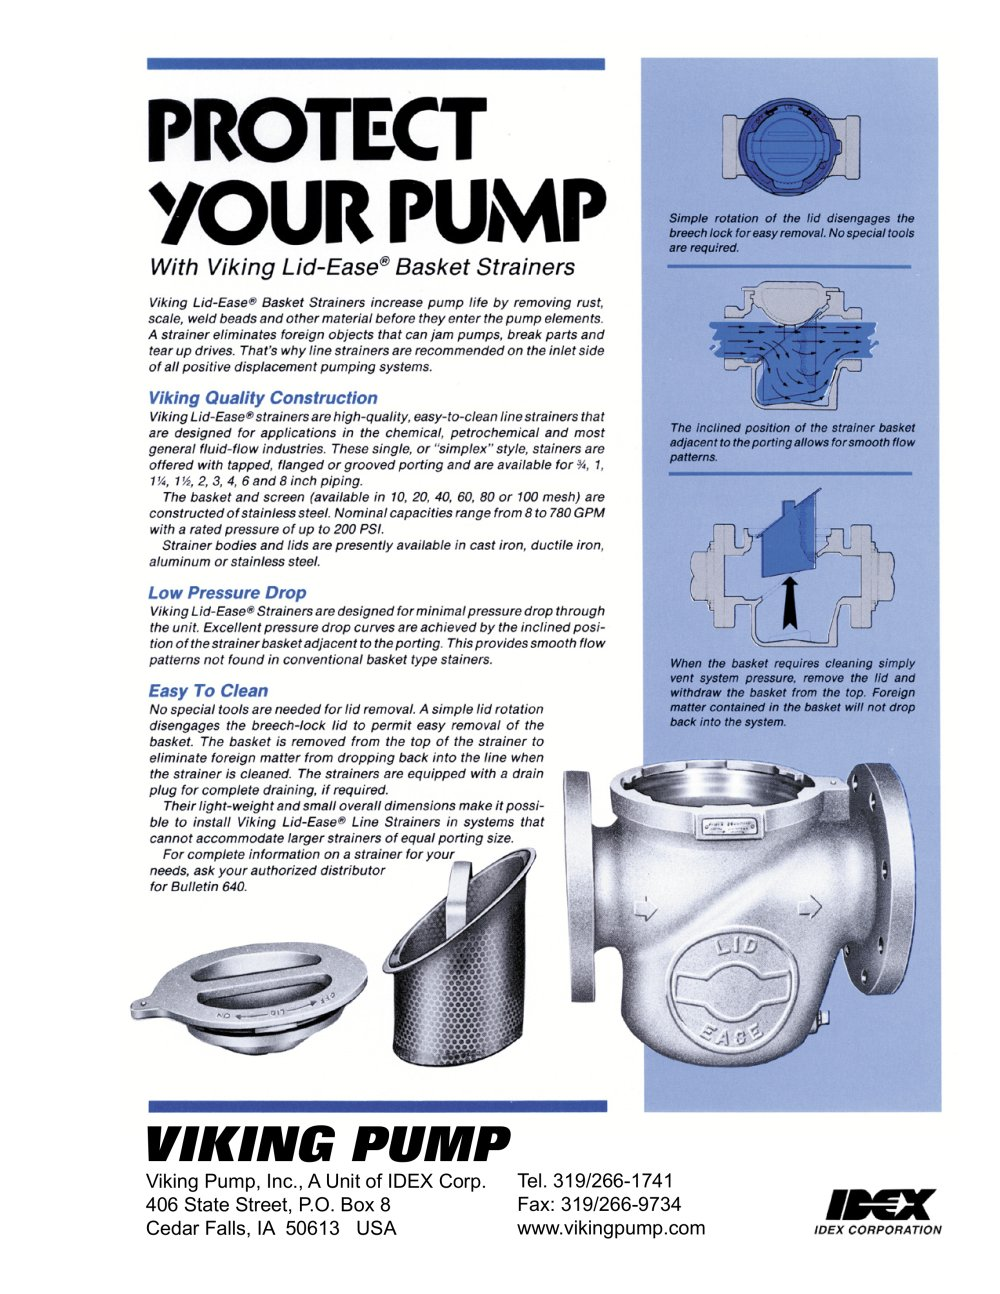 viking pump product flyers viking pump pdf catalogue viking pump product flyers 1 20 pages